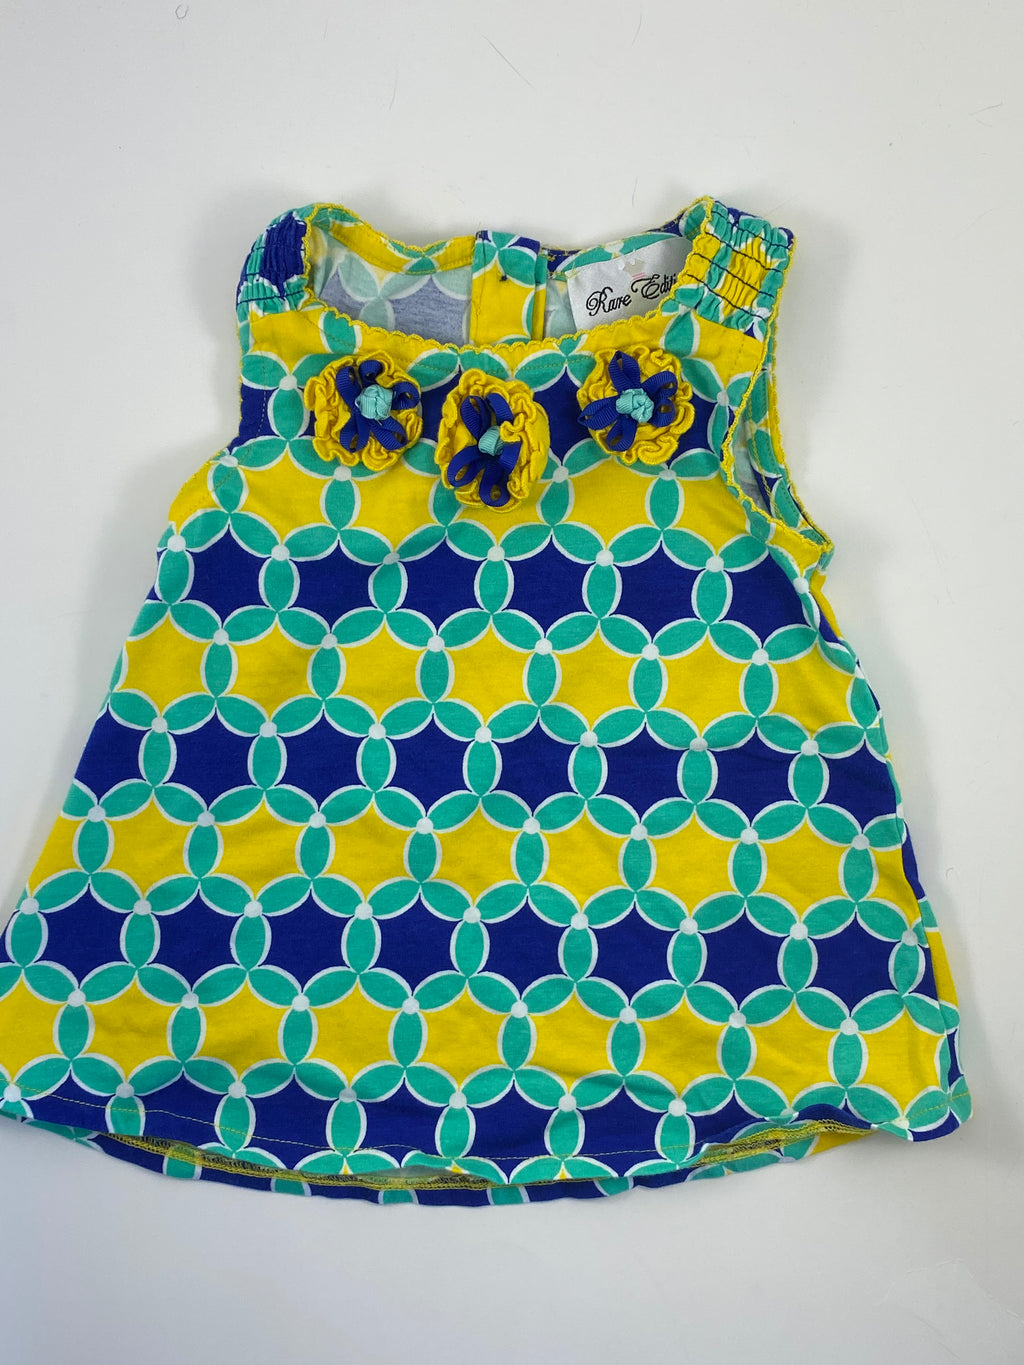 Girl's Short Sleeve Dress - Size 2t